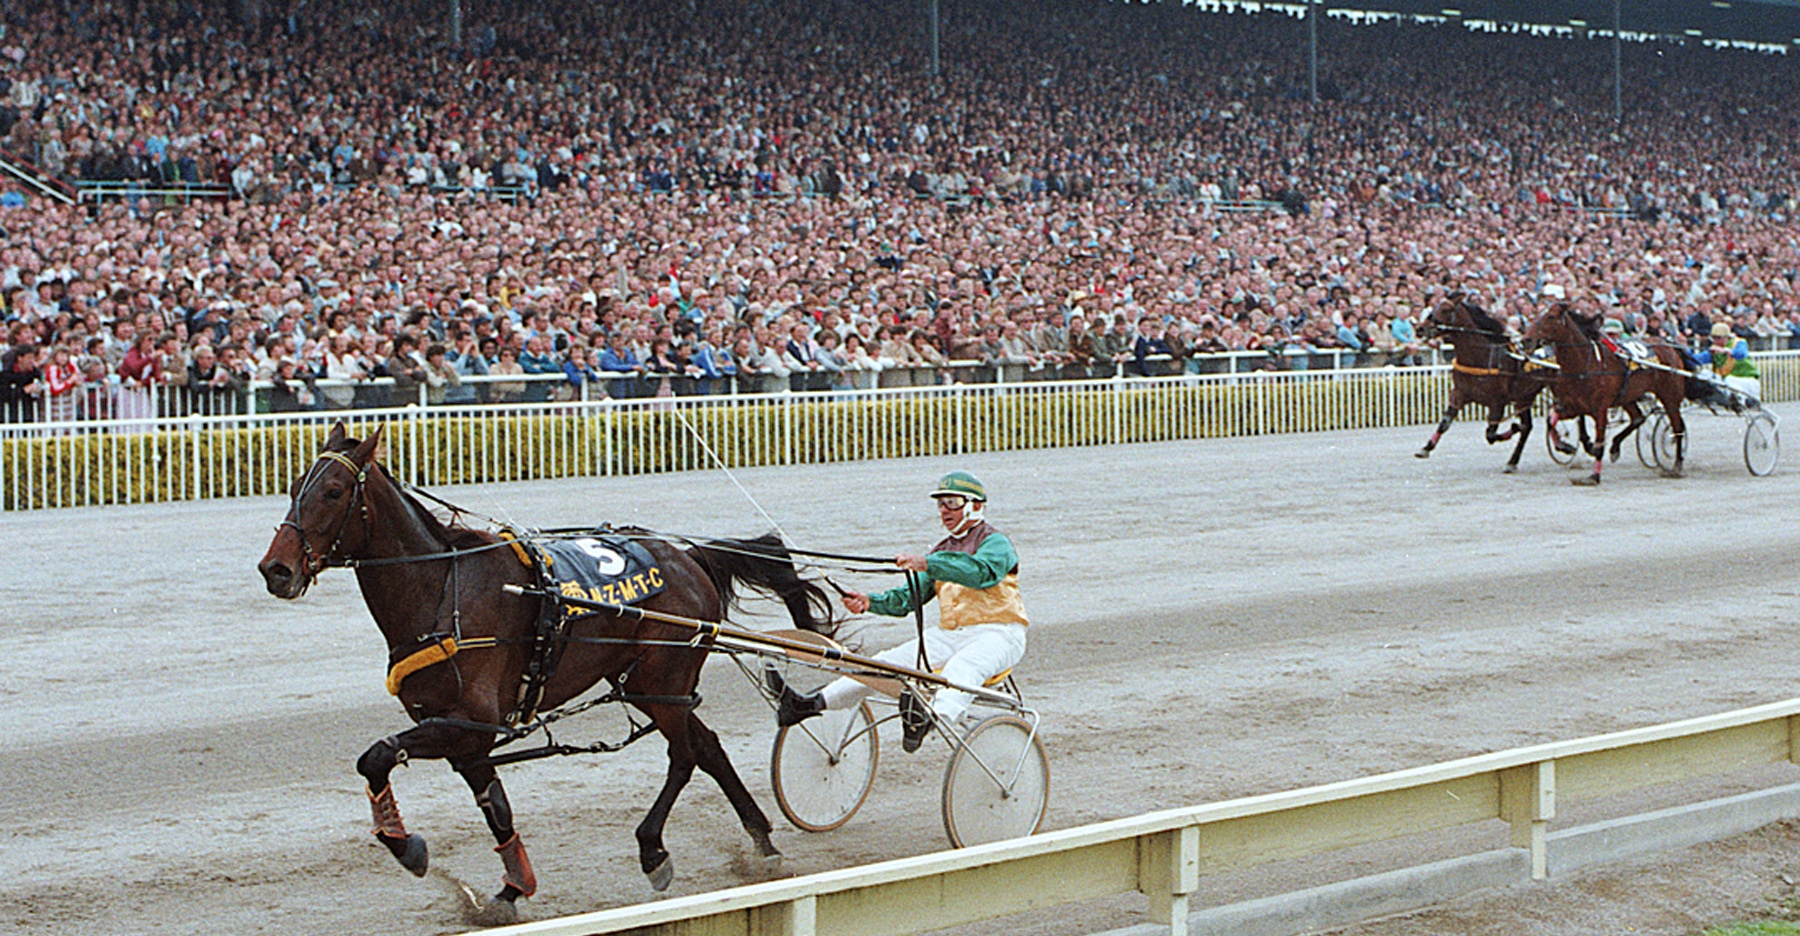 Image courtesy Ajay Berry Race Images NZ - A typical Cup day crowd at Addington watches Steel Jaw destroy the opposition in 1983.